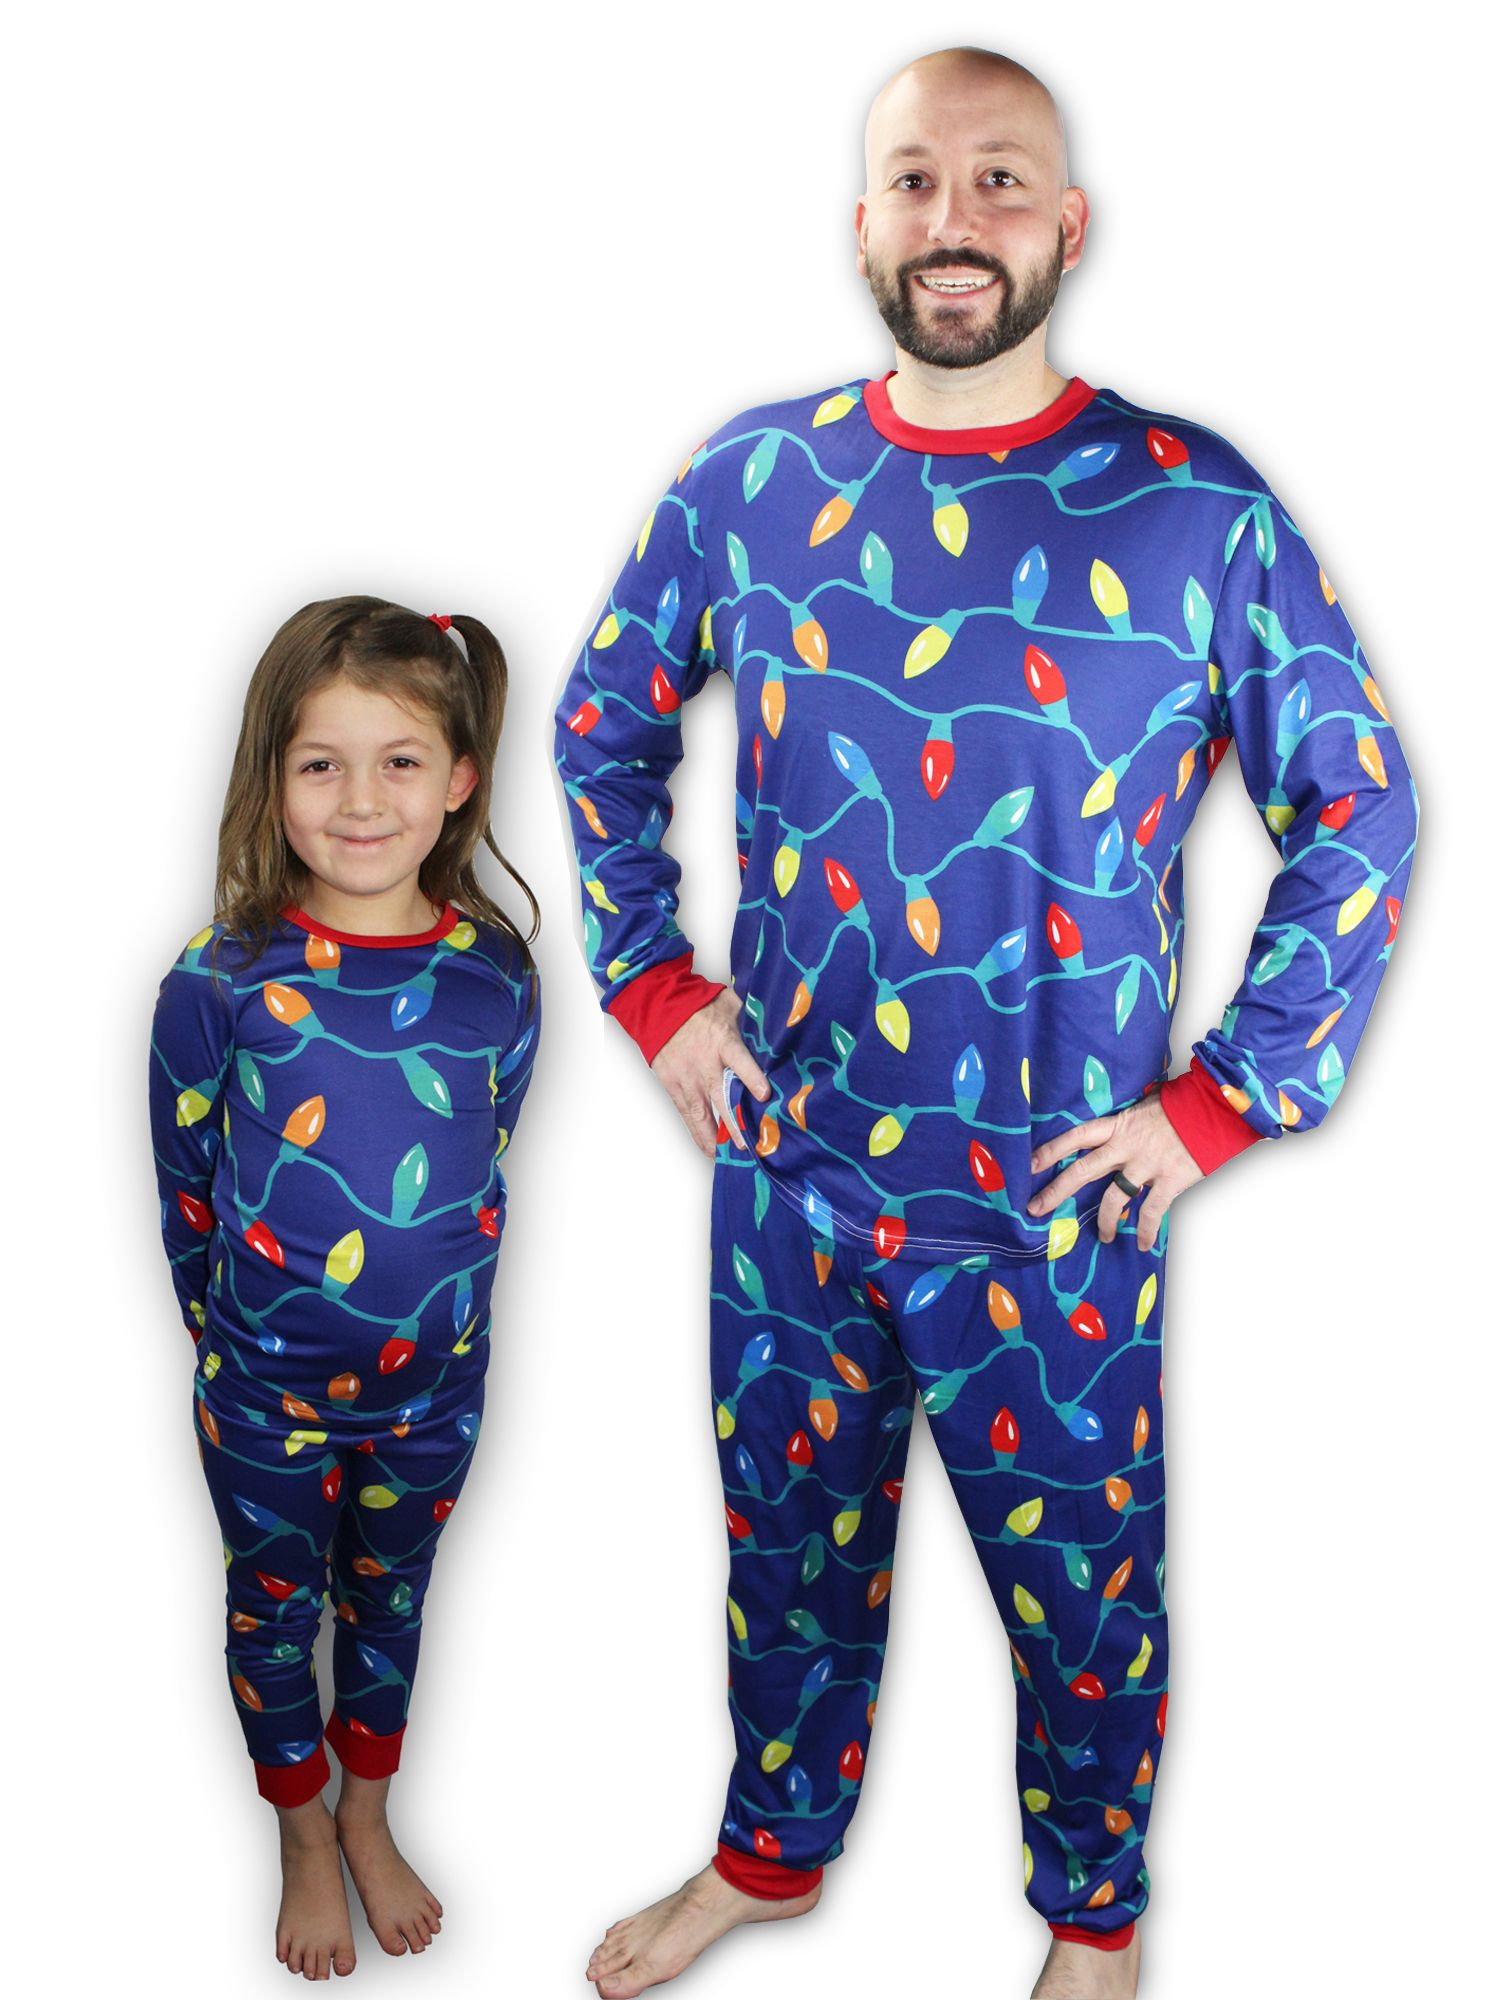 Matching Christmas Lights Pajamas for kids, adults, women